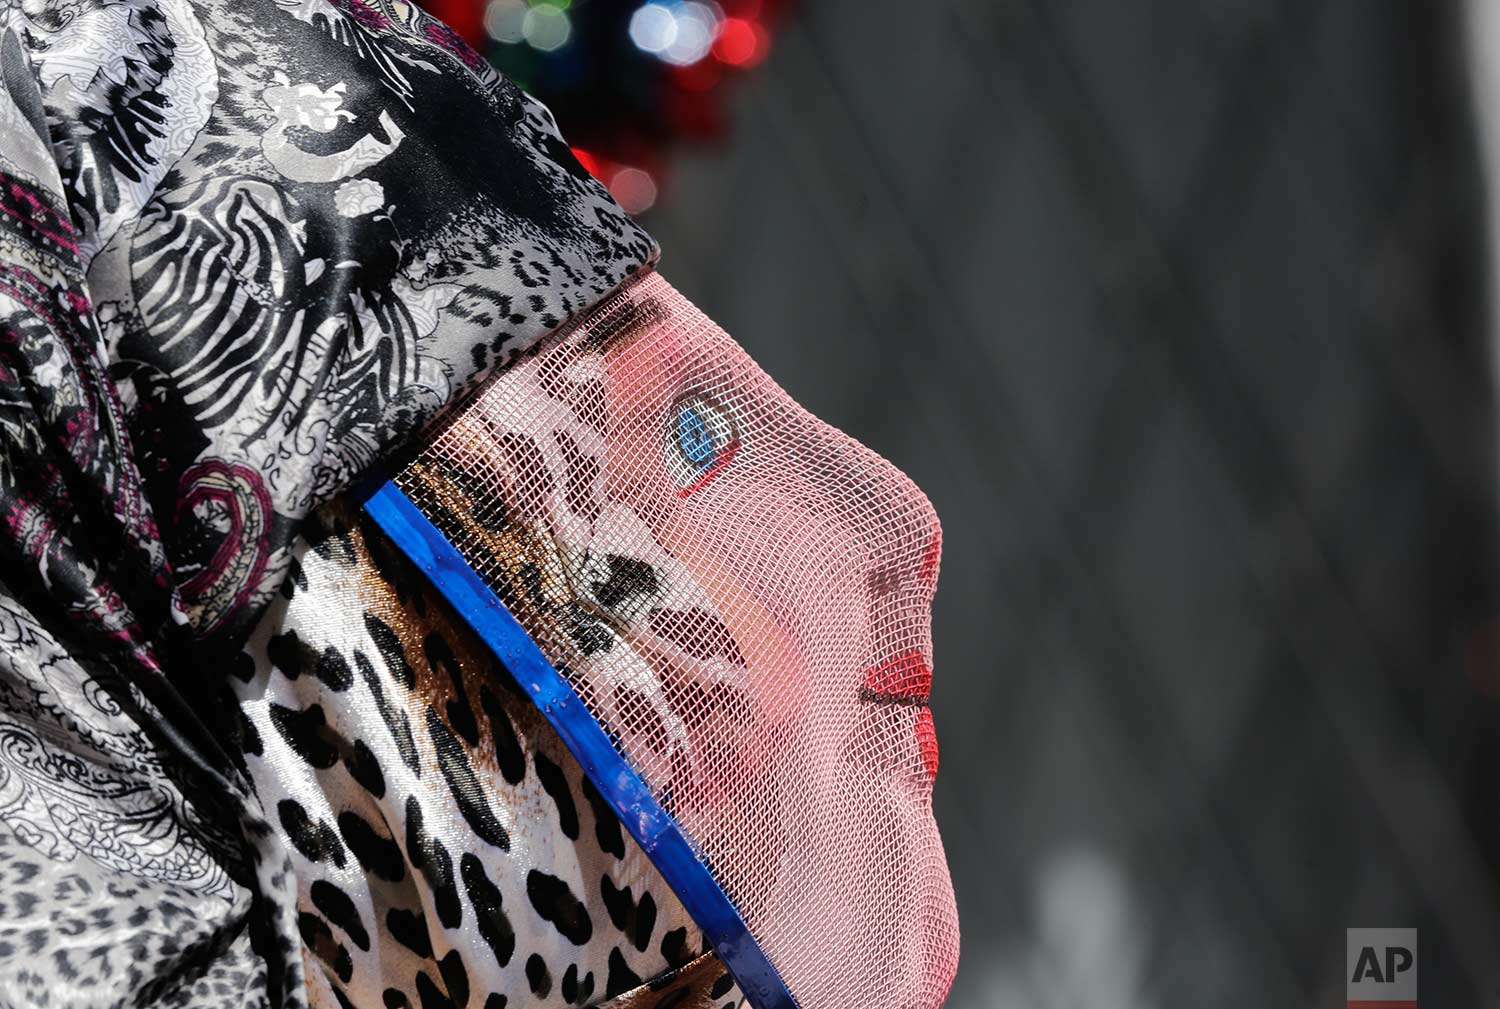 "A person dons a wire mesh mask representing the more affluent during the traditional New Year's festival known as ""La Diablada"", in Pillaro, Ecuador, Friday, Jan. 5, 2018. (AP Photo/Dolores Ochoa)"